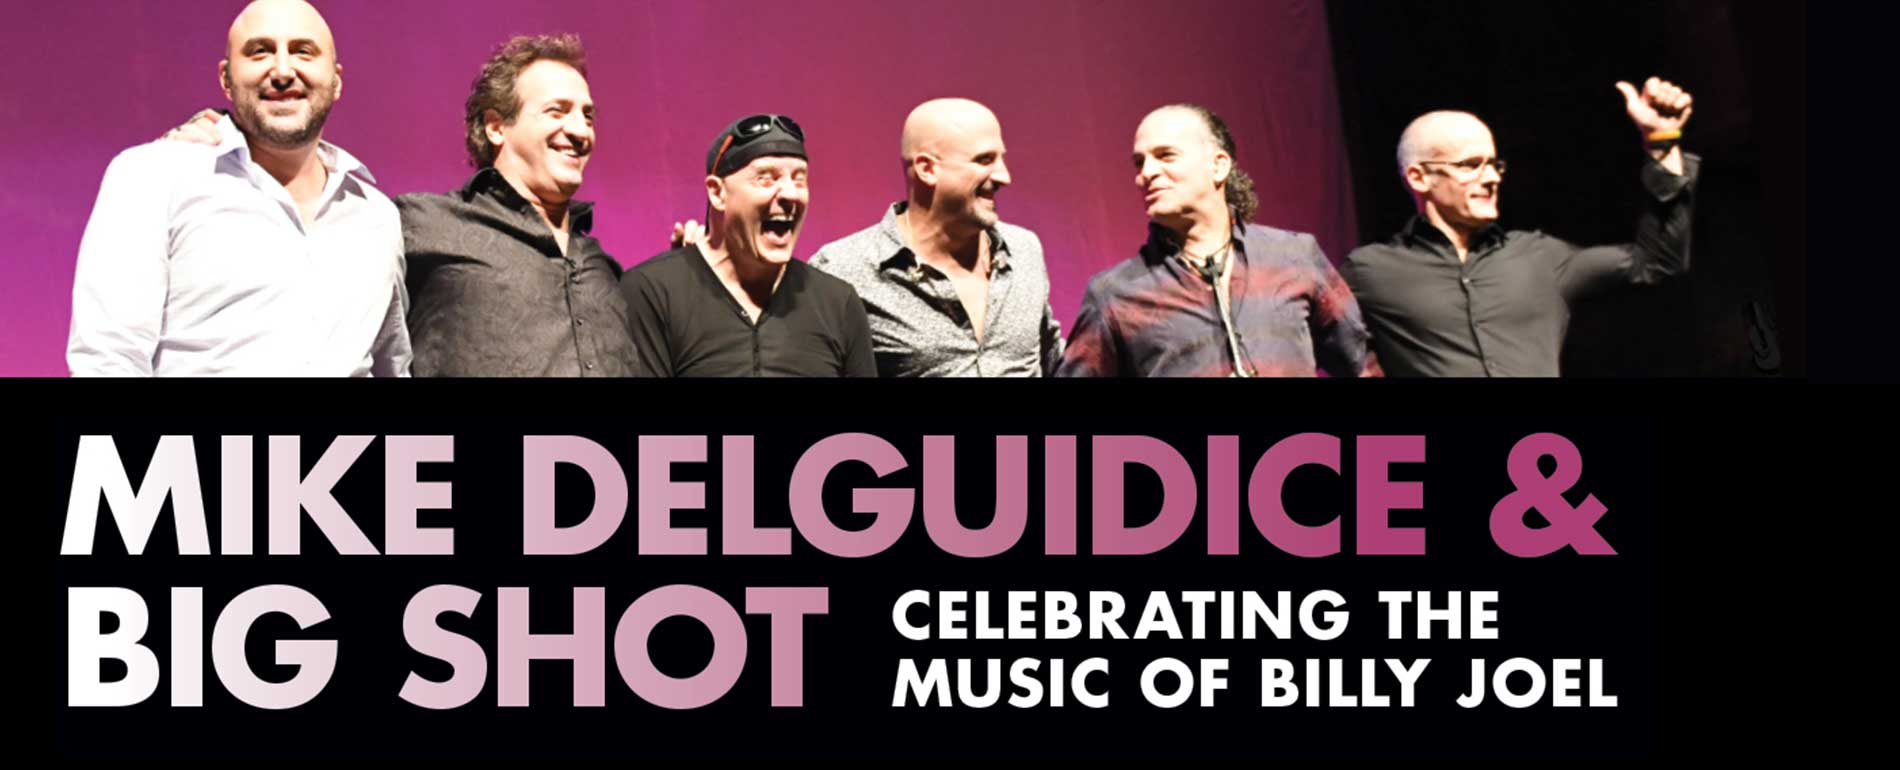 Celebrating the music of Billy Joel with Mike Delguidice and the Big Shot